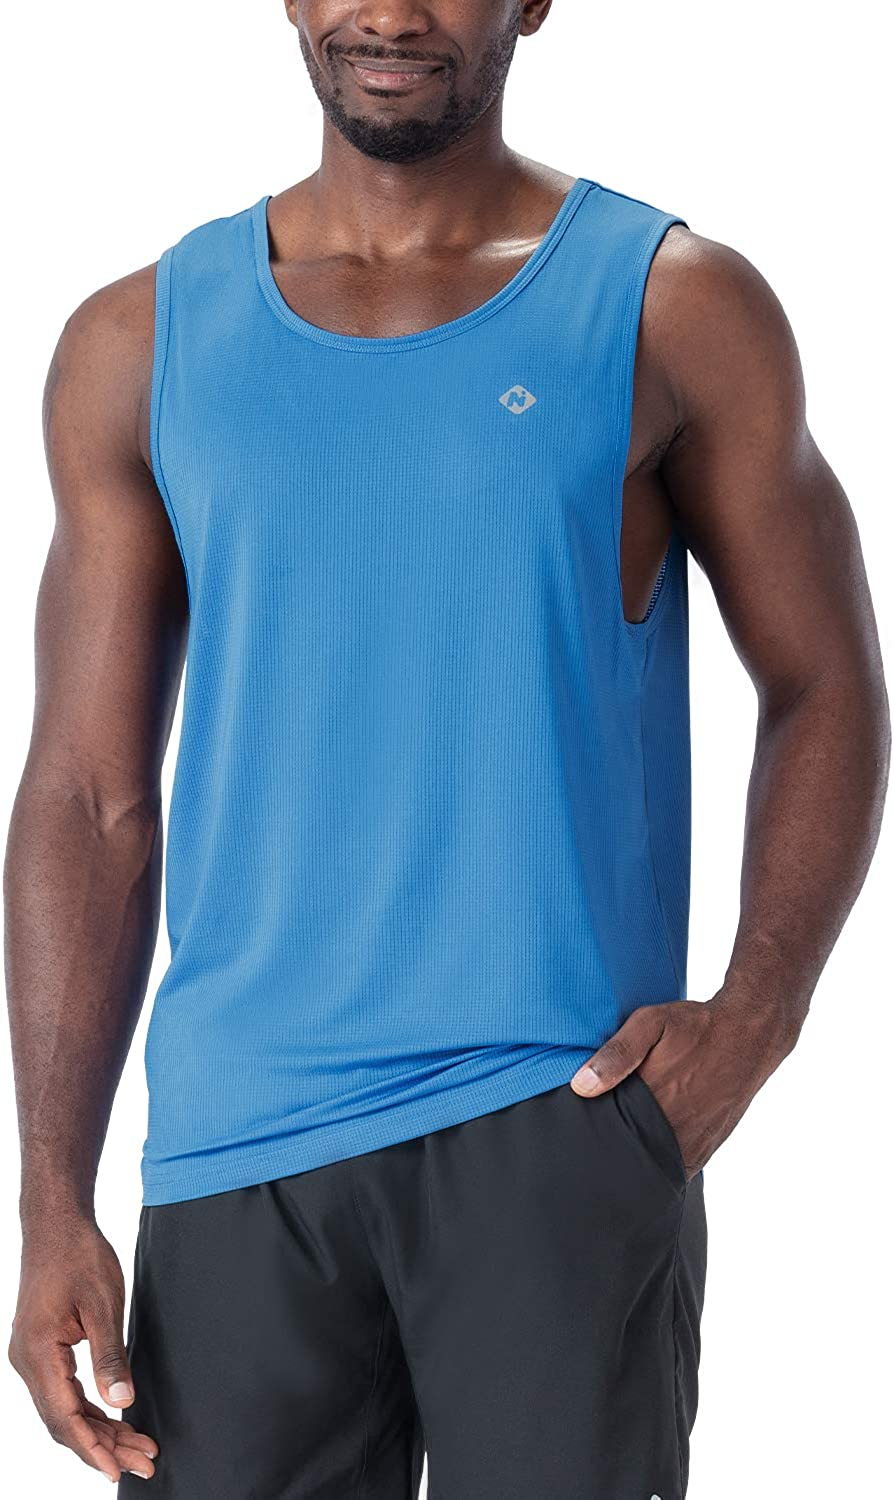 NAVISKIN Special price for a limited time Men's Workout Tank Running Muscle Safety and trust Sleeveless Tops